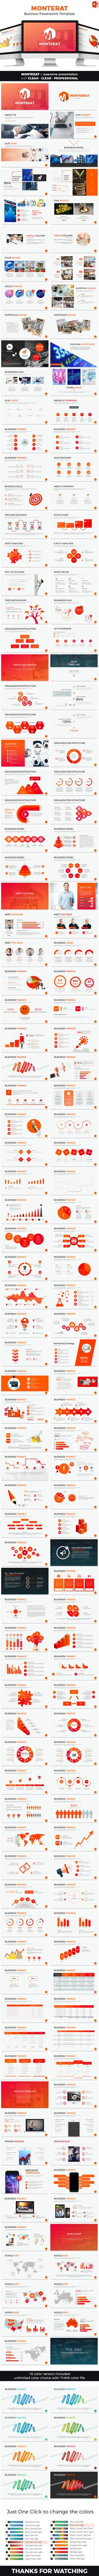 Monterat  Business Powerpoint Template  #productivity #yellow • Download ➝ https://graphicriver.net/item/monterat-business-powerpoint-template/18425572?ref=pxcr